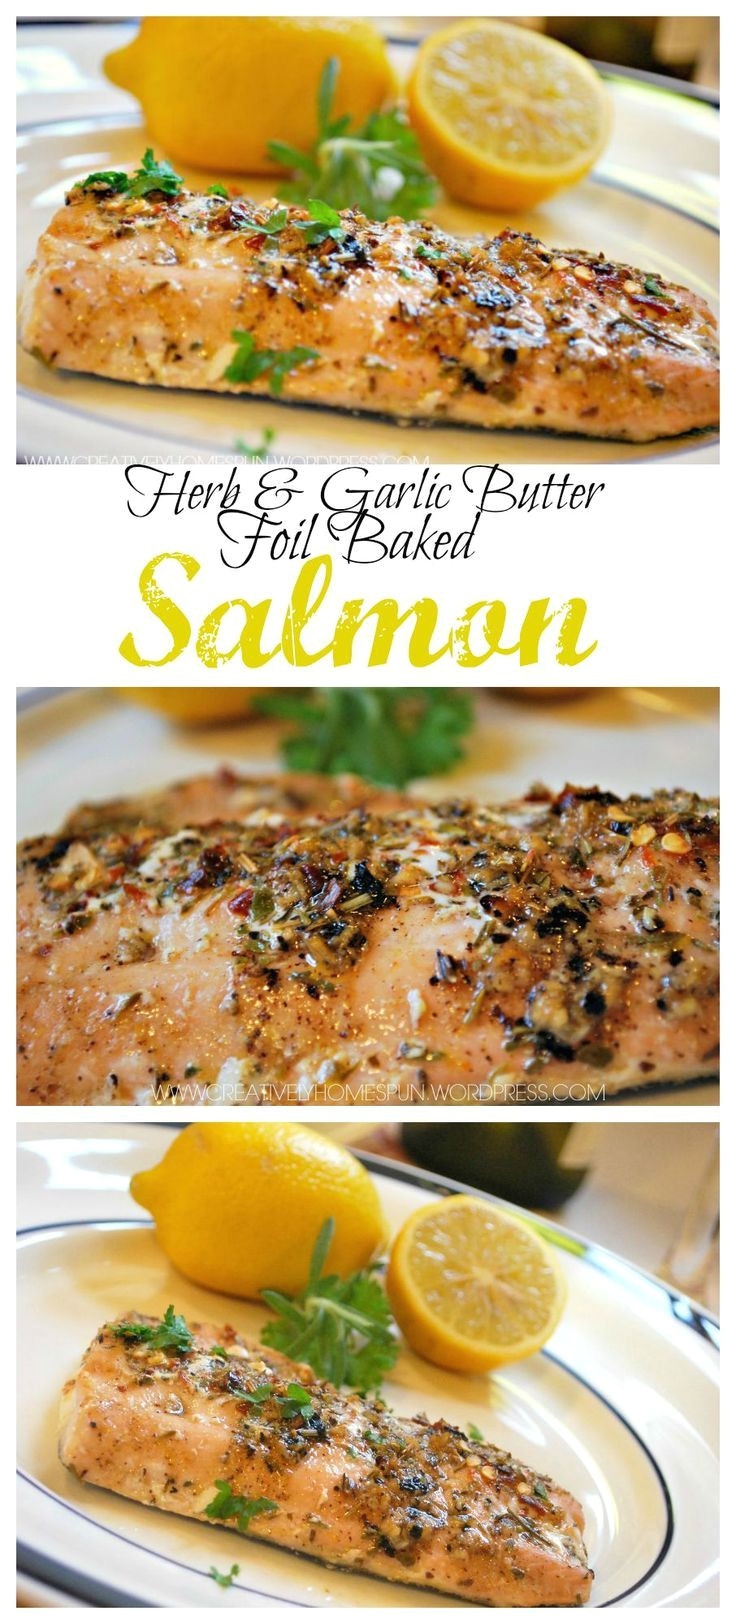 herb garlic butter foil baked salmon